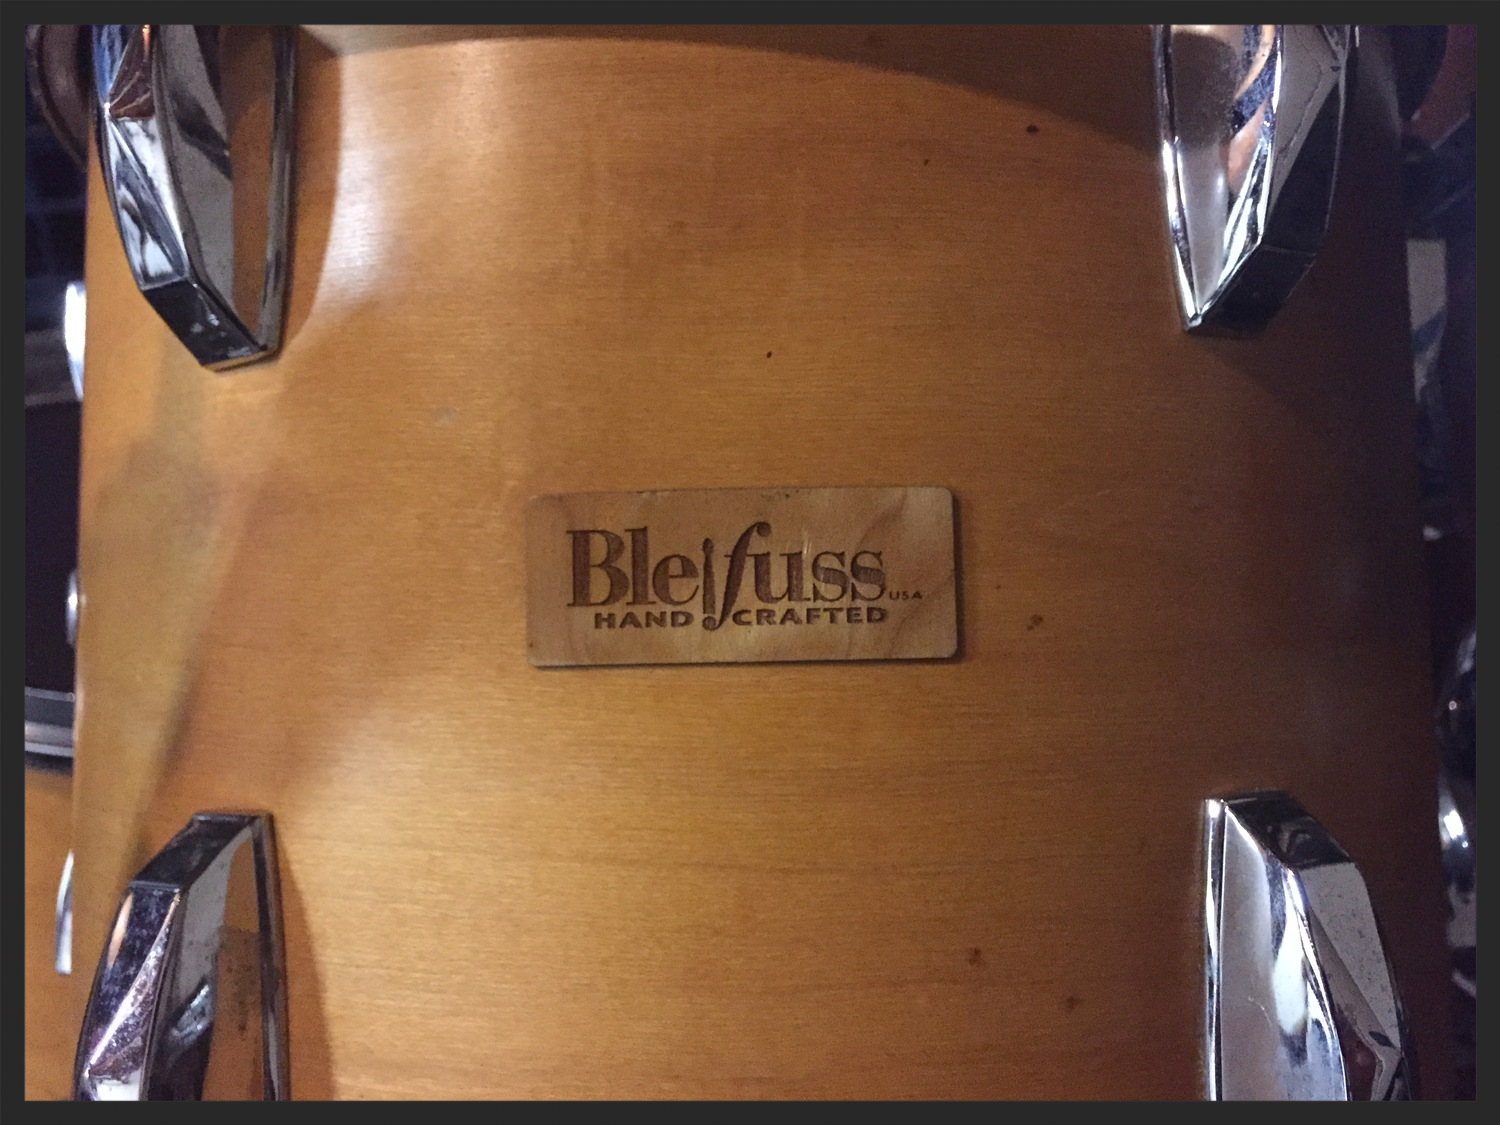 When he originally made my drums, Paulhad not yet started putting these wood badges on his drums, but he asked me later if I would like to add them to my kit.